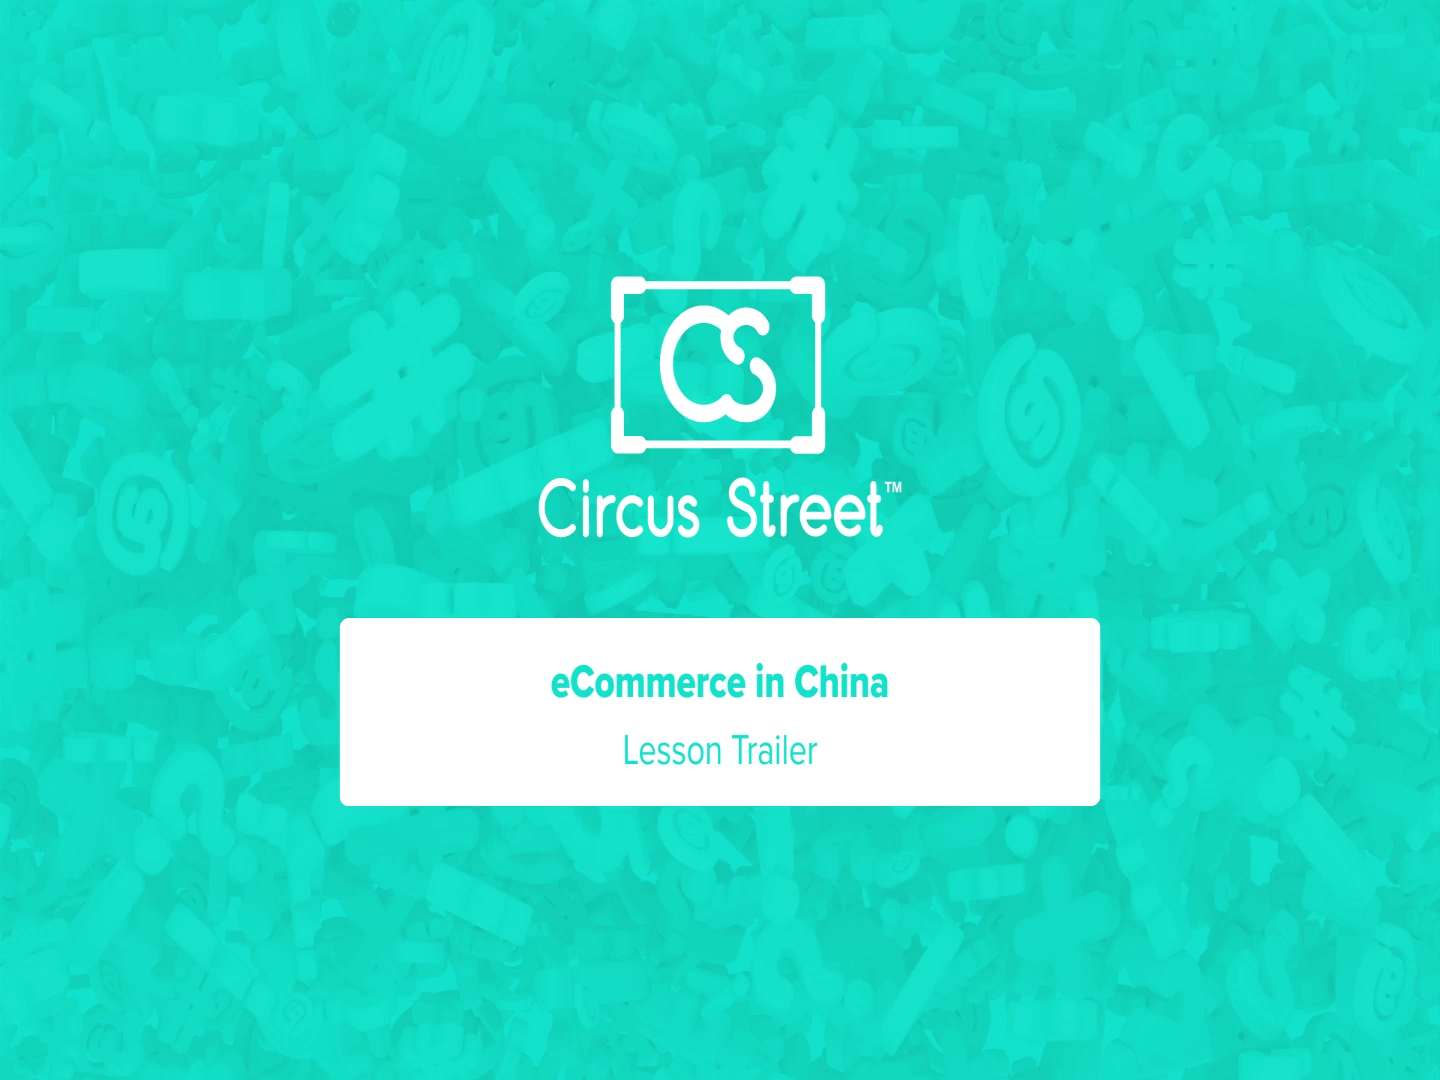 eCommerce in China Trailer